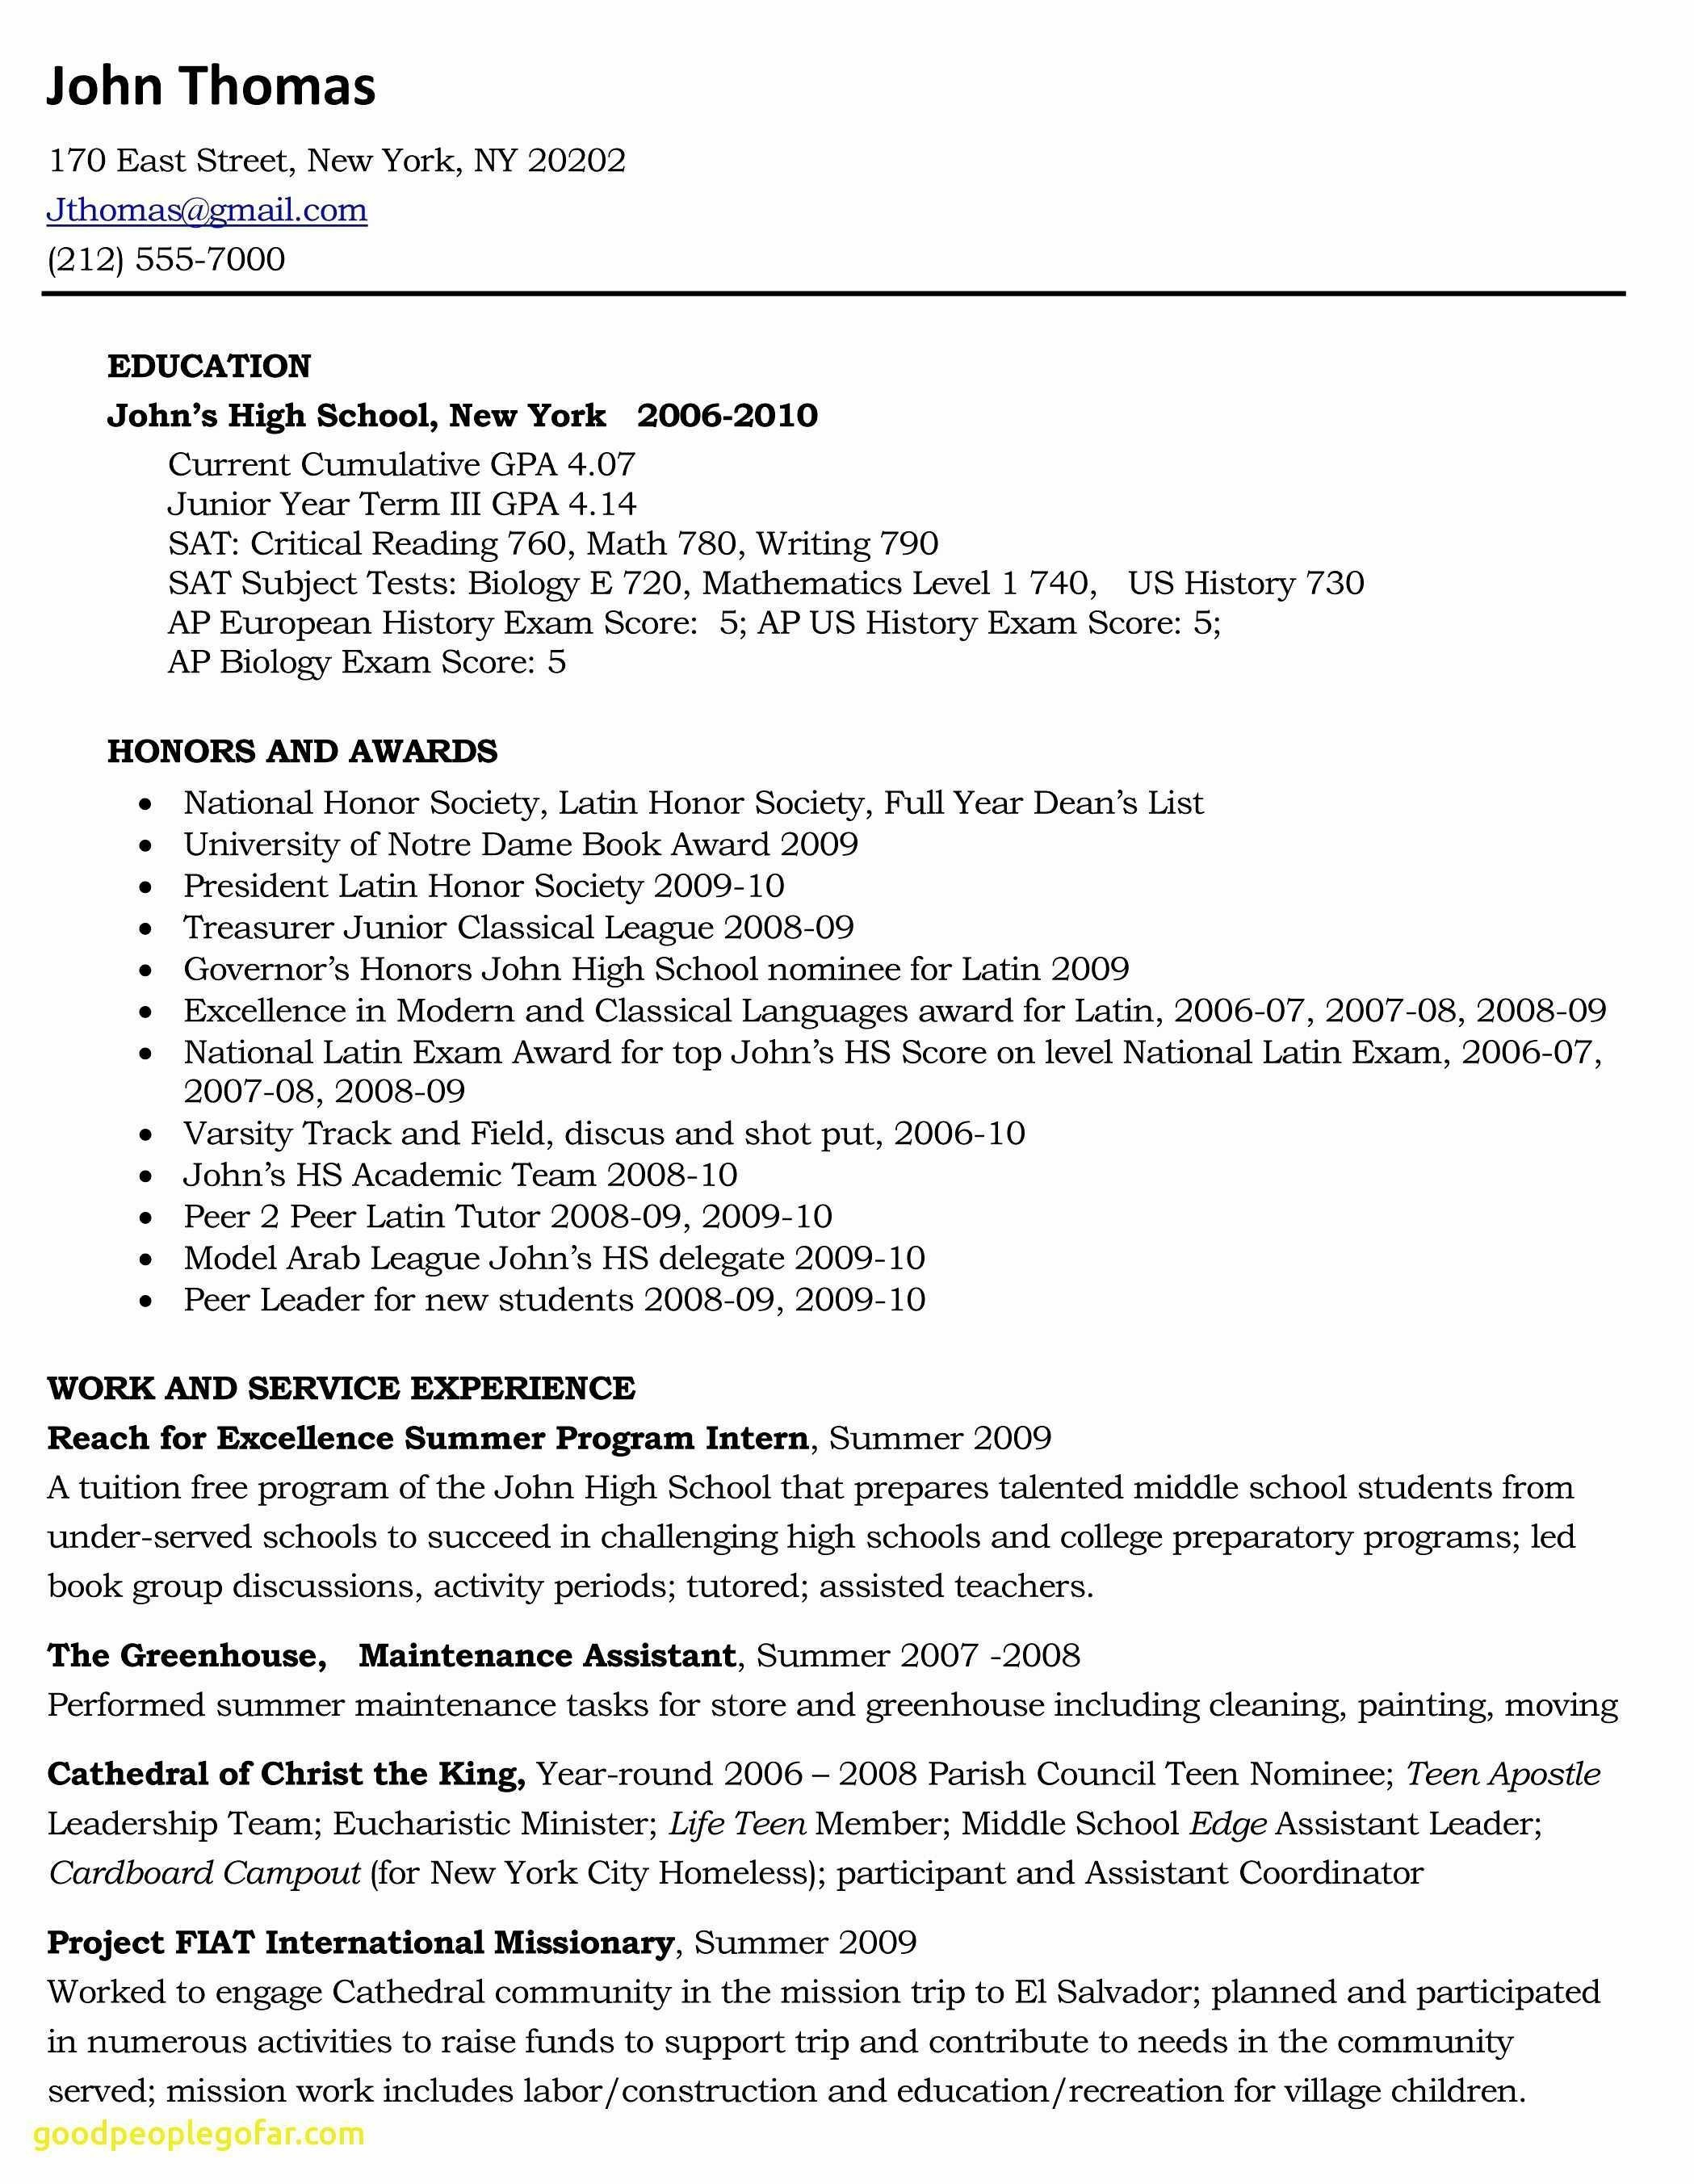 Make A Free Resume Online - Build A Free Resume Line Lovely New Resume Maker Free Usajobs